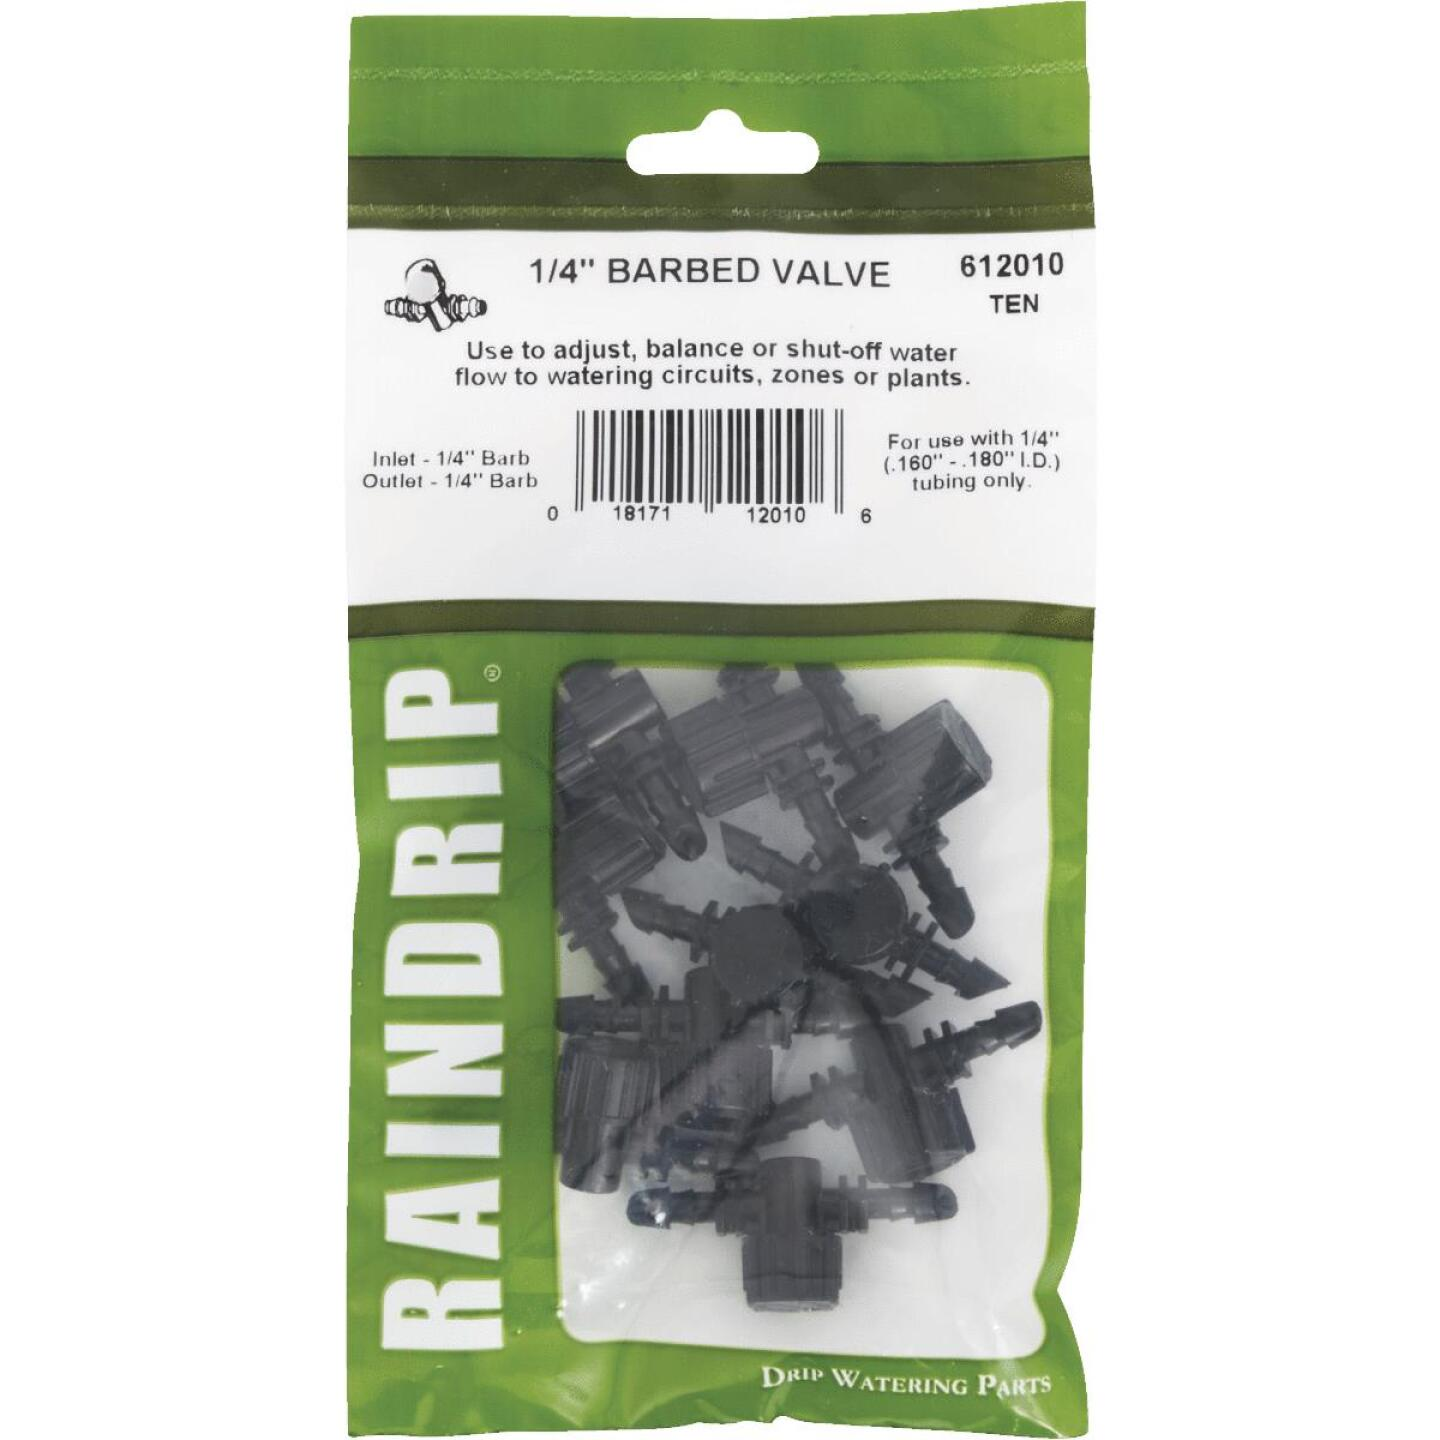 Raindrip 1/4 In. Double-Barbed In-Line Valve (10-Pack) Image 2